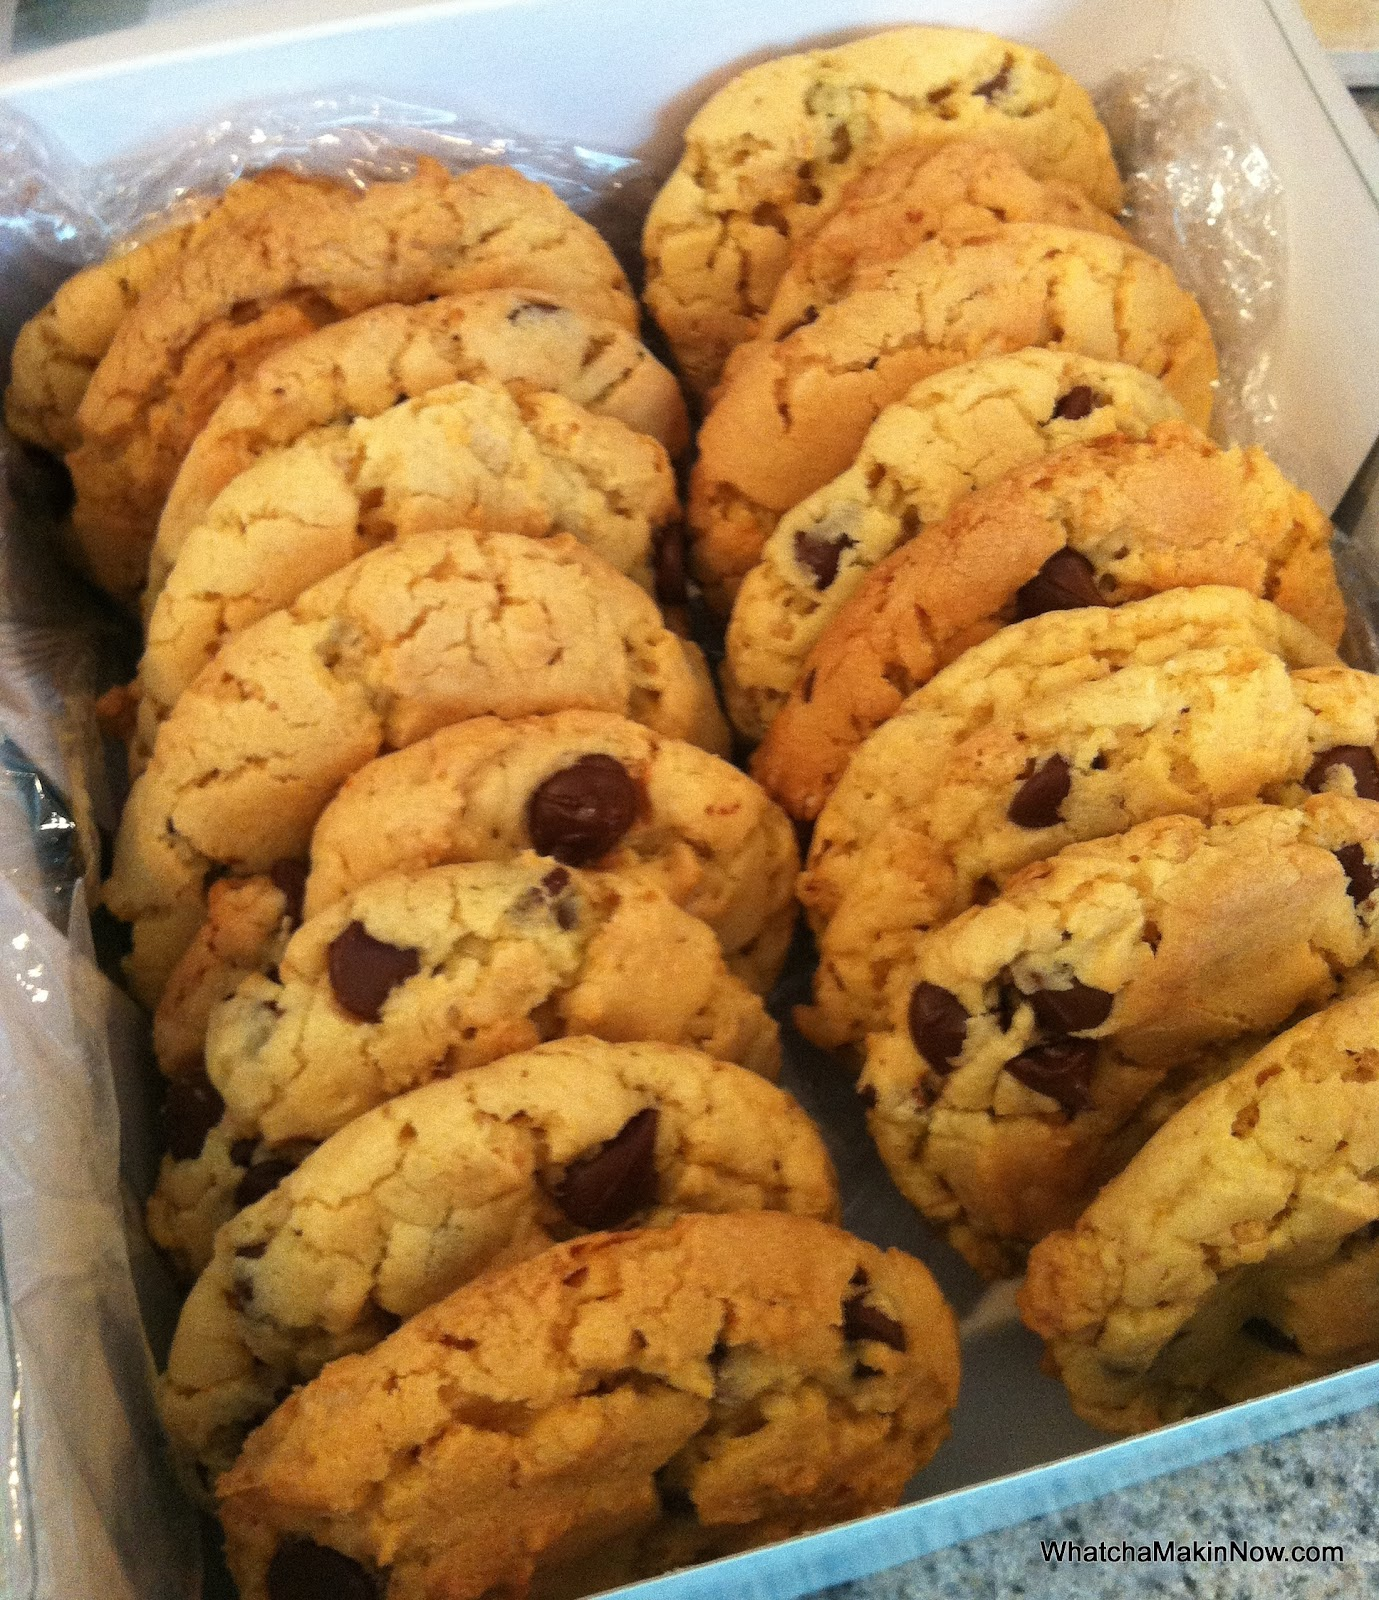 Whatcha Makin' Now?: Chocolate Chip Crunch Cookies (Cake Mix Cookies)